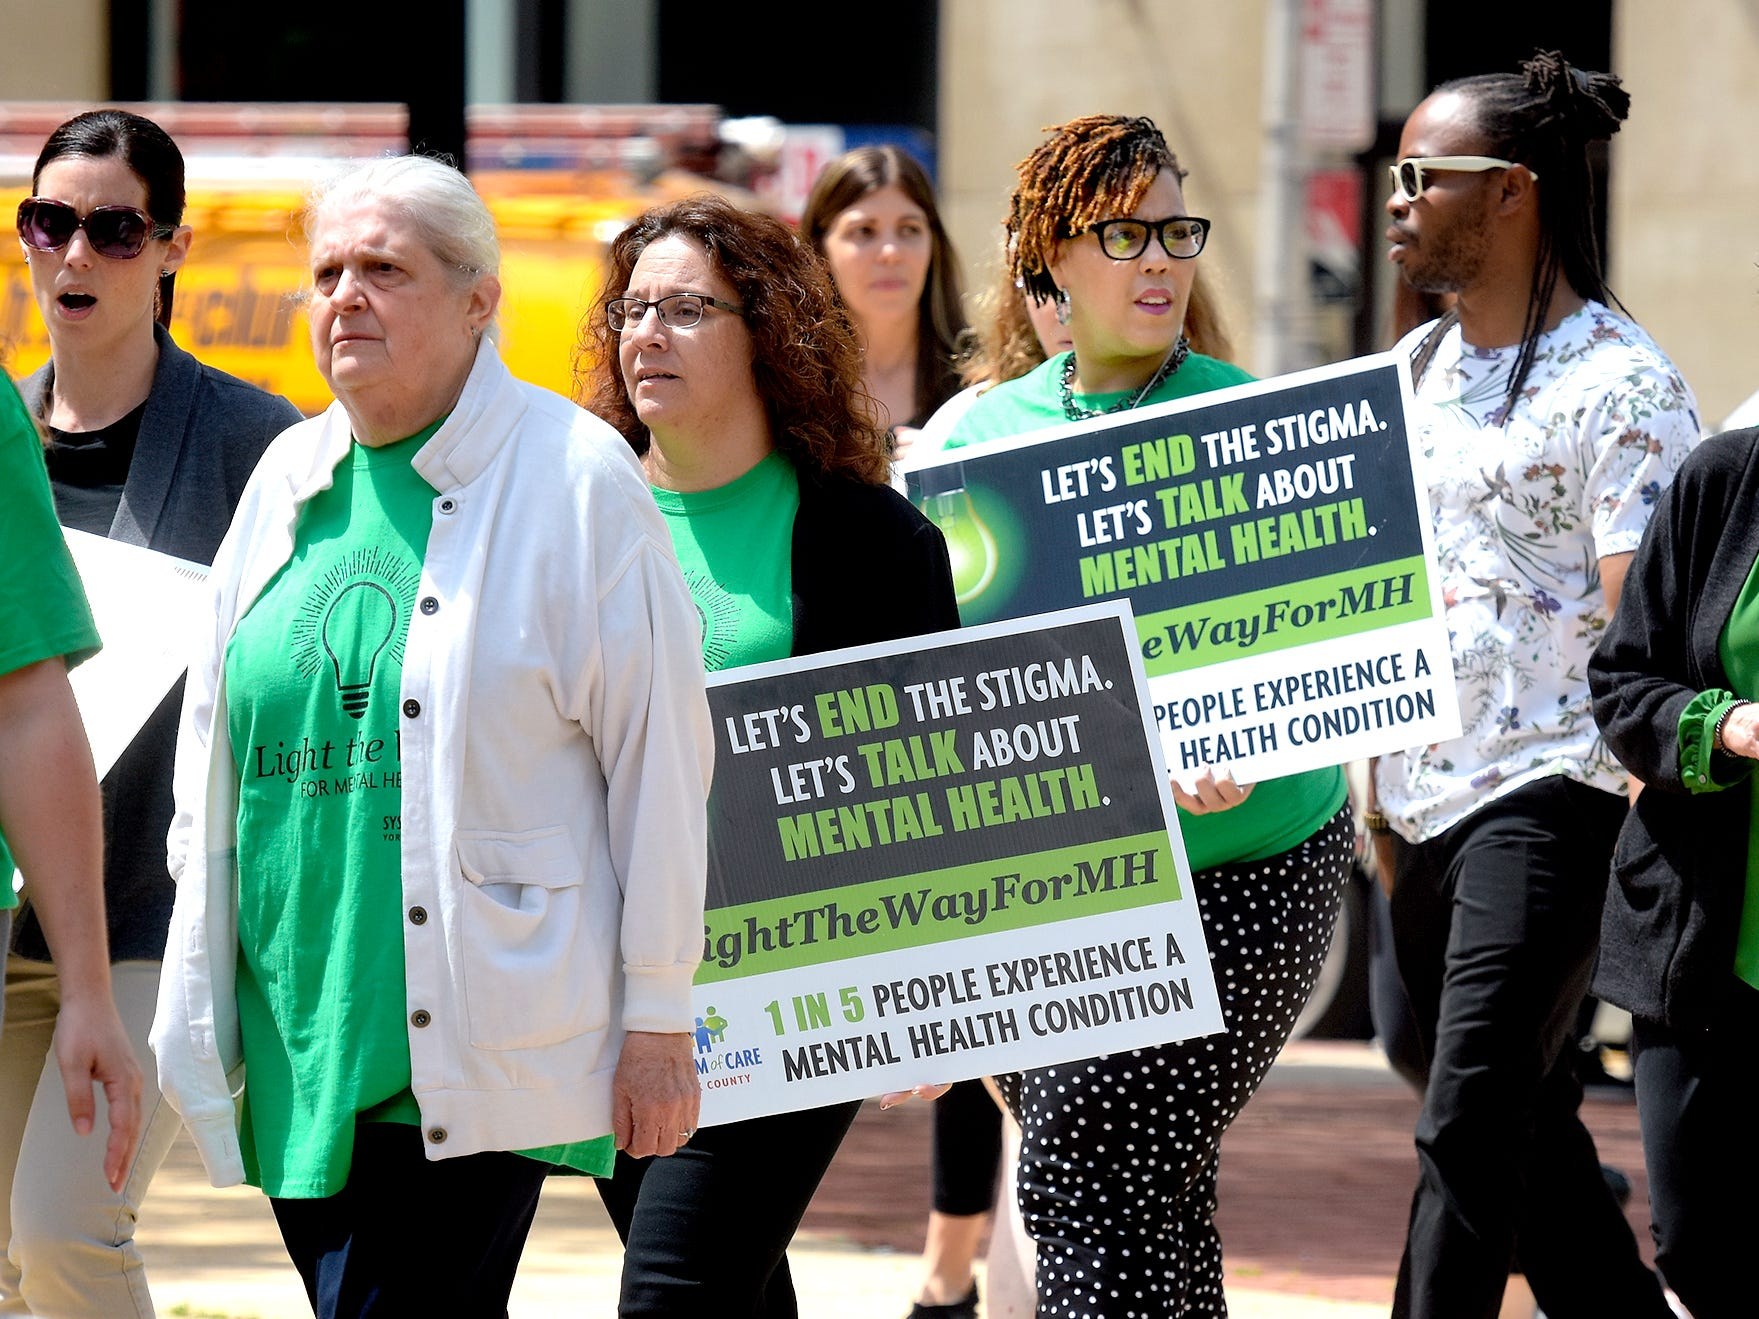 York County Human Services employees Del Franz, left, and Endi Dabney-Cox carry signs during the Walk To Raise Awareness About Mental Health in York City Monday, May 6, 2019. The York County System of Care in collaboration with York County Human Services sponsored the walk during Mental Health Awareness Month. Area business and organizations will be displaying green lighting through May 12th to show support. Bill Kalina photo